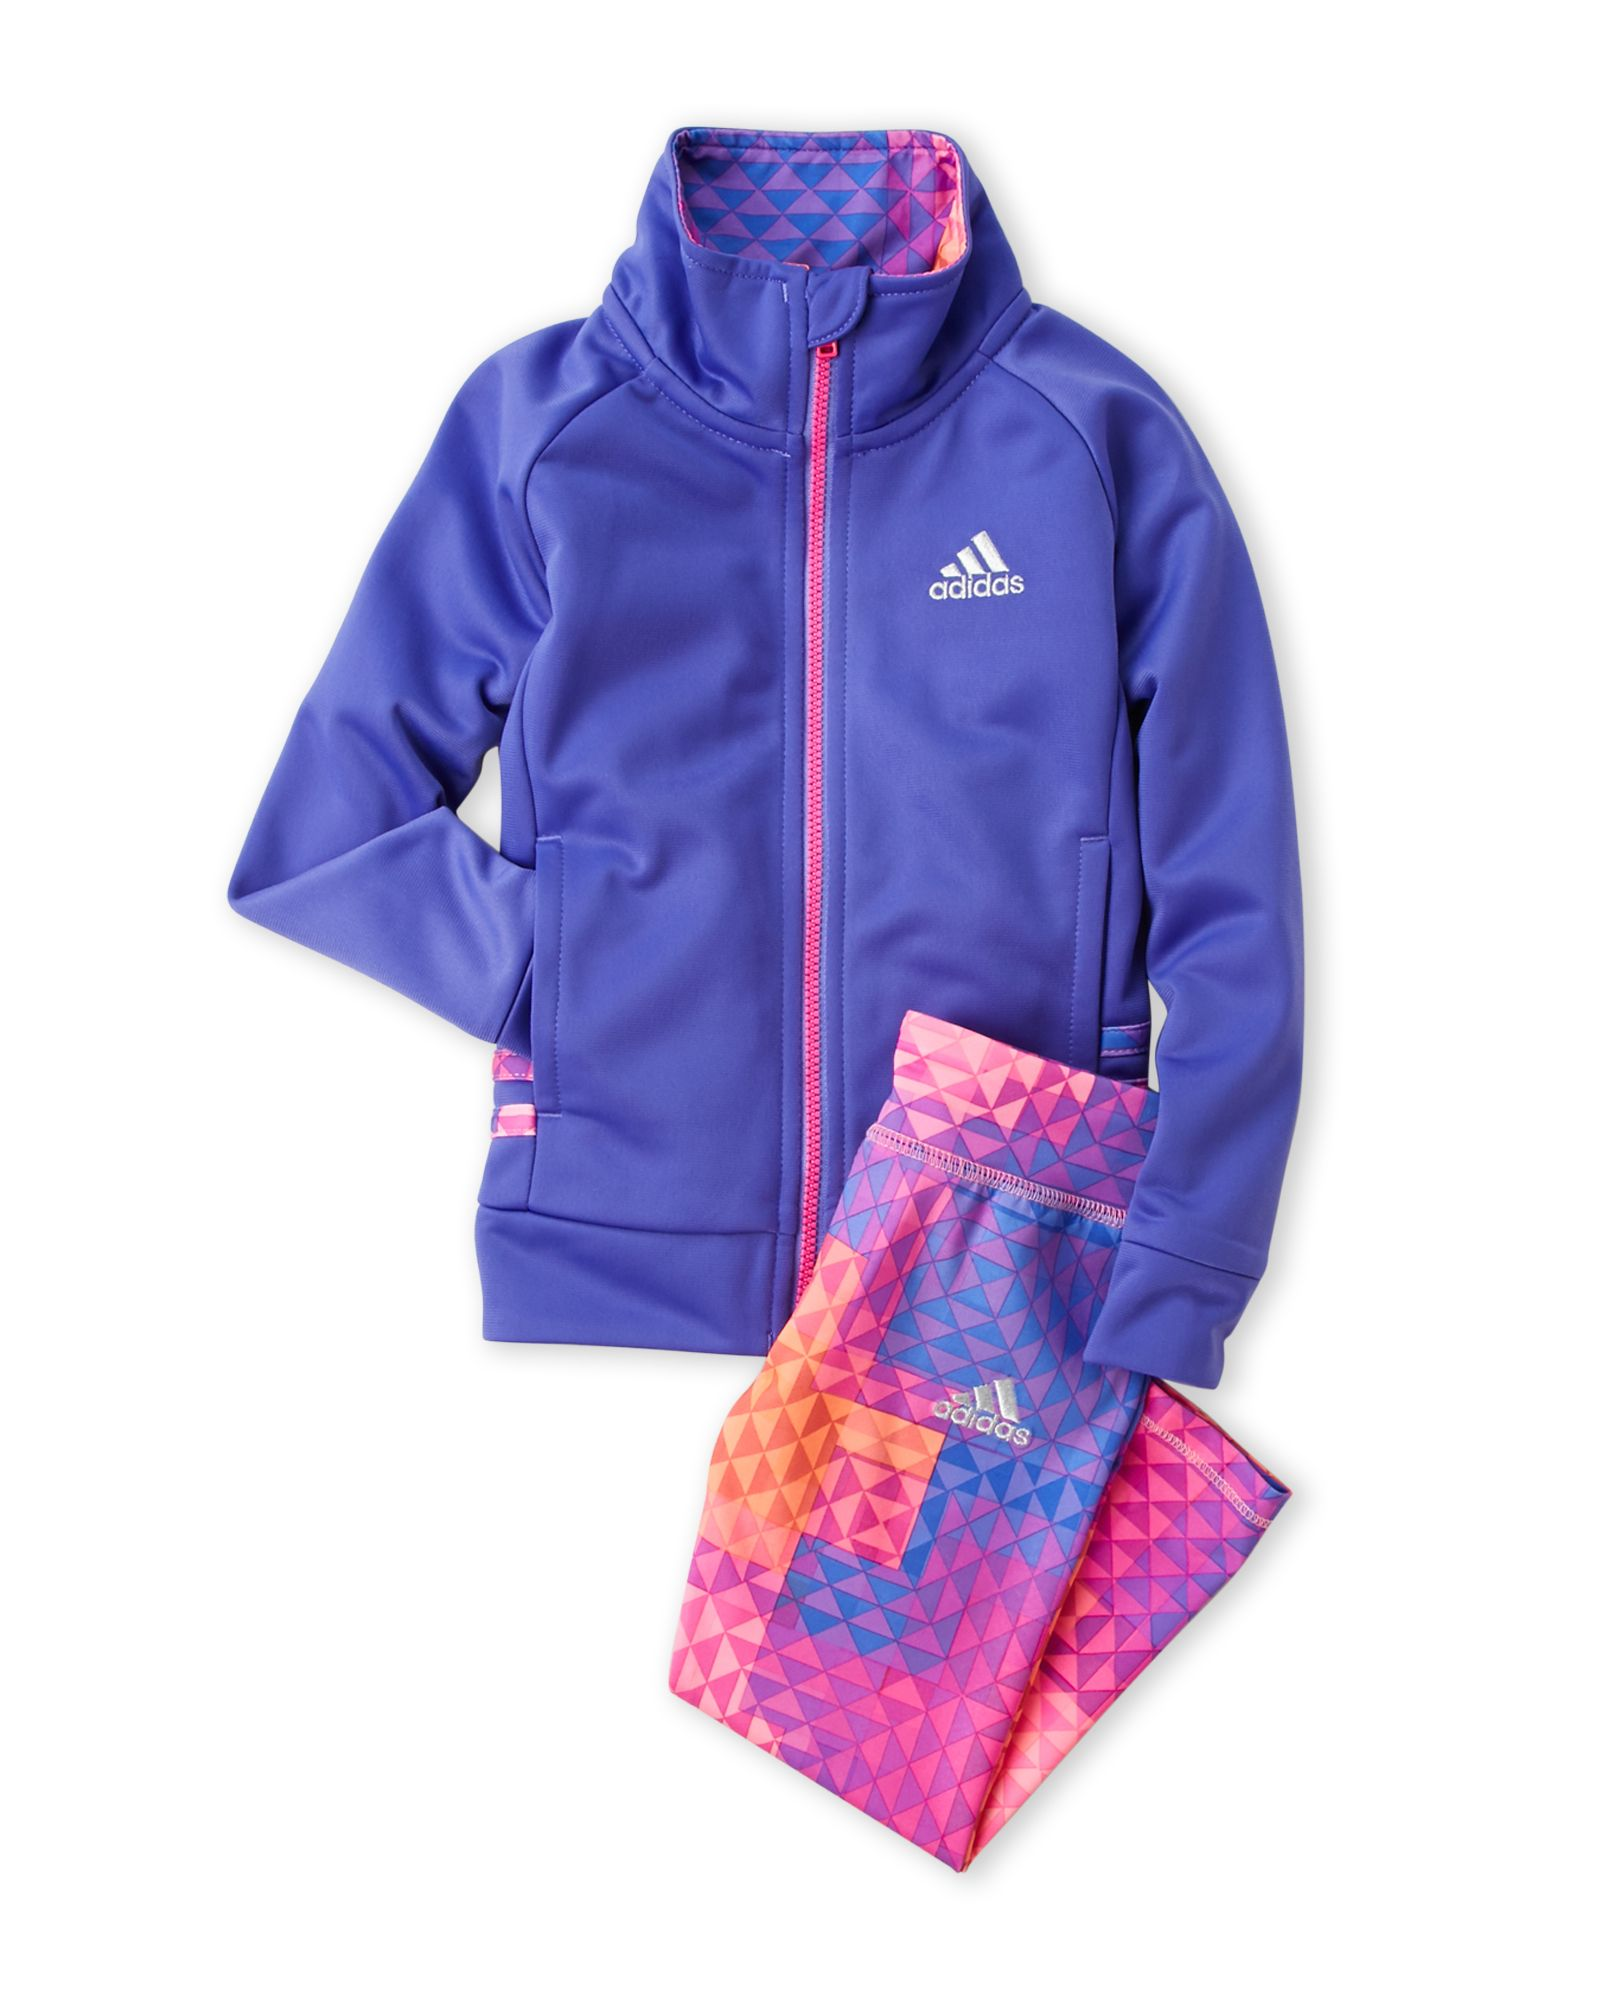 5a47dae6d8f Adidas (Toddler Girls) Two-Piece Purple Track Jacket & Leggings Set ...